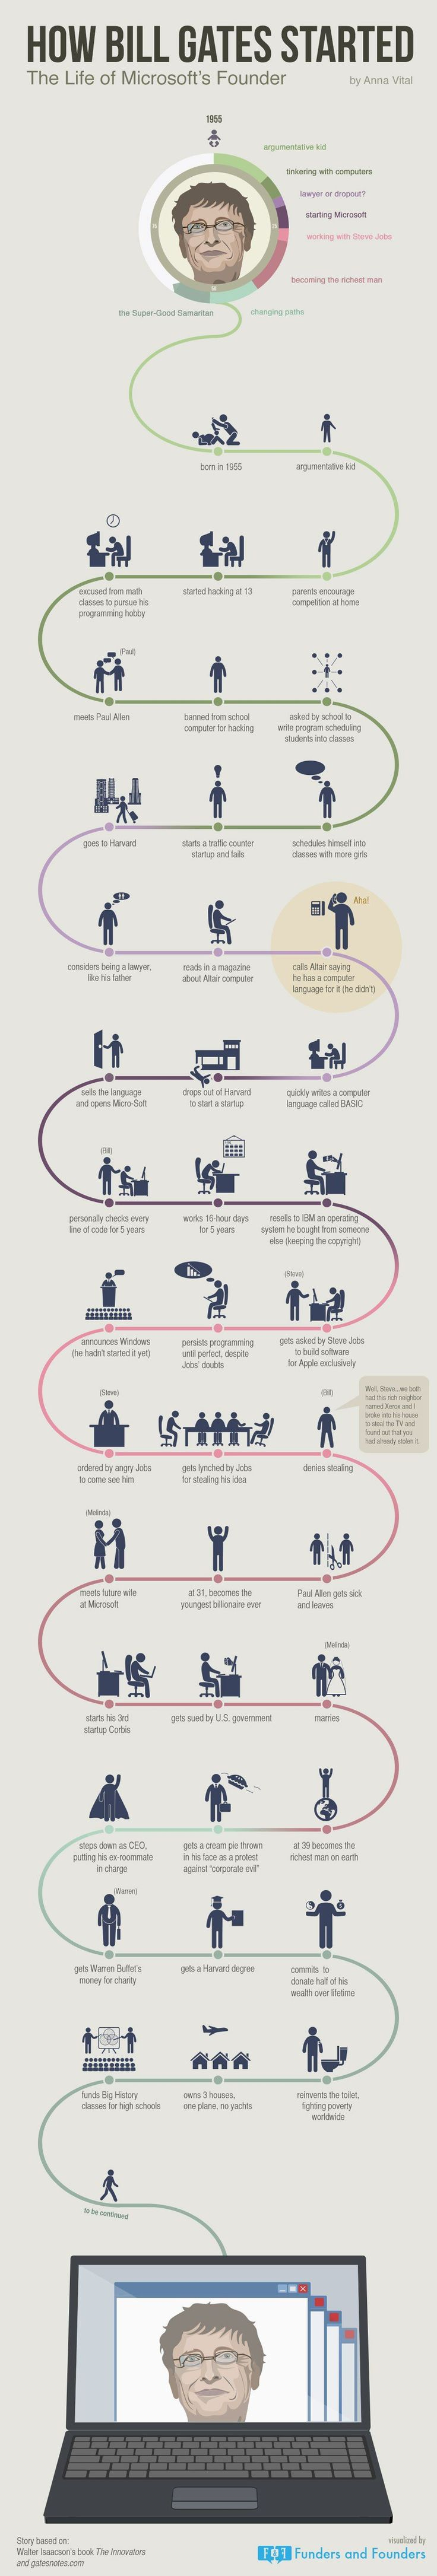 The Fascinating Twists and Turns of Bill Gates's Career (Infographic) | Inc.com